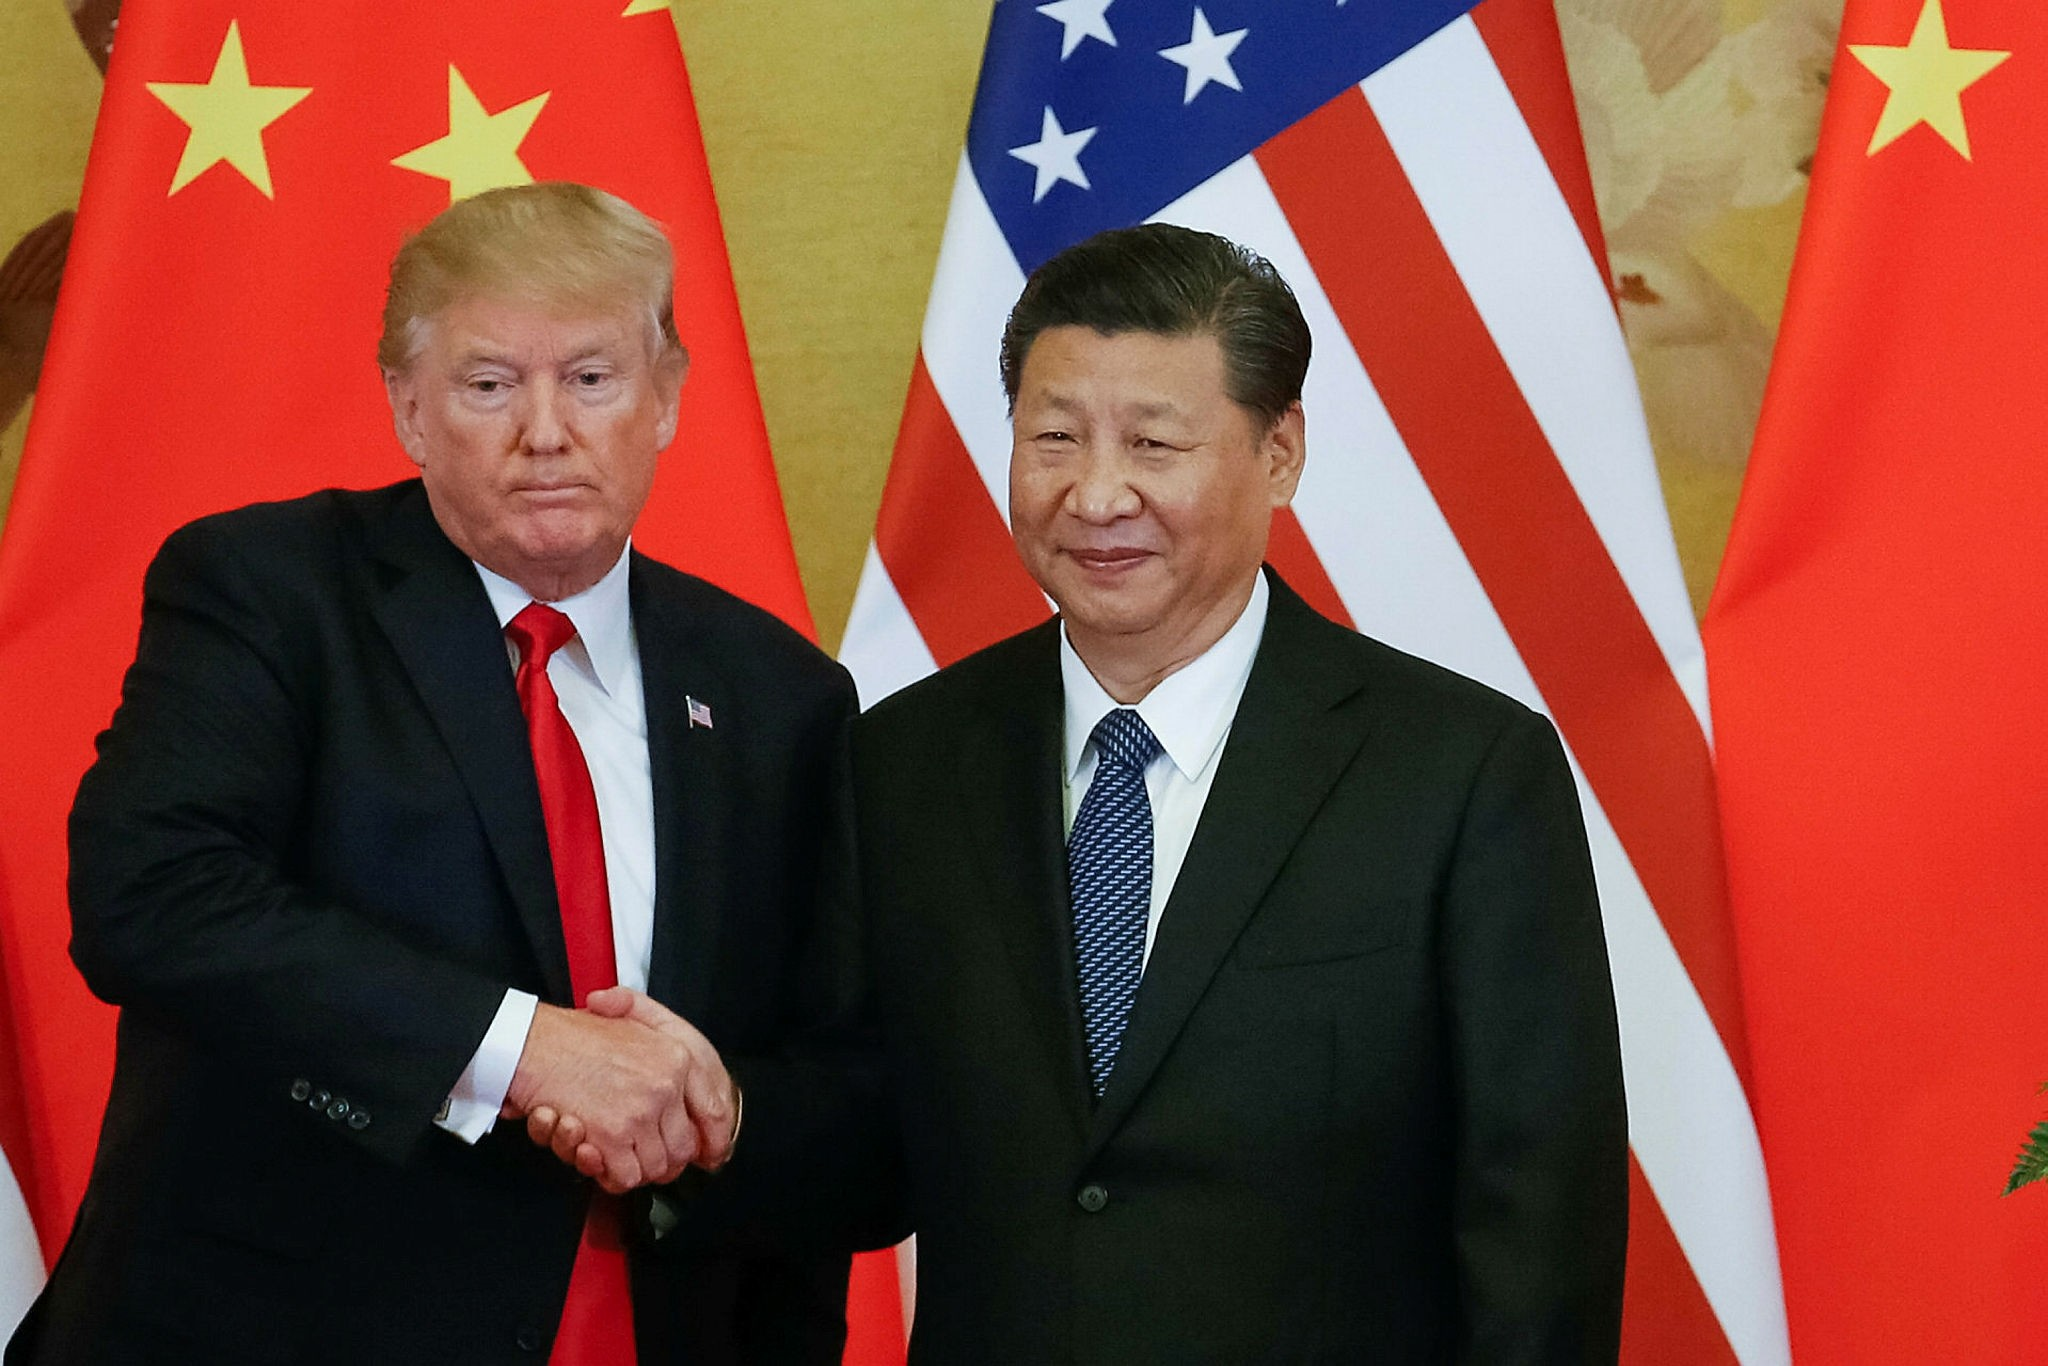 U.S. President Donald Trump (L) and Chinese President Xi Jinping (R) shake hands during a press conference, Beijing, Nov. 9.